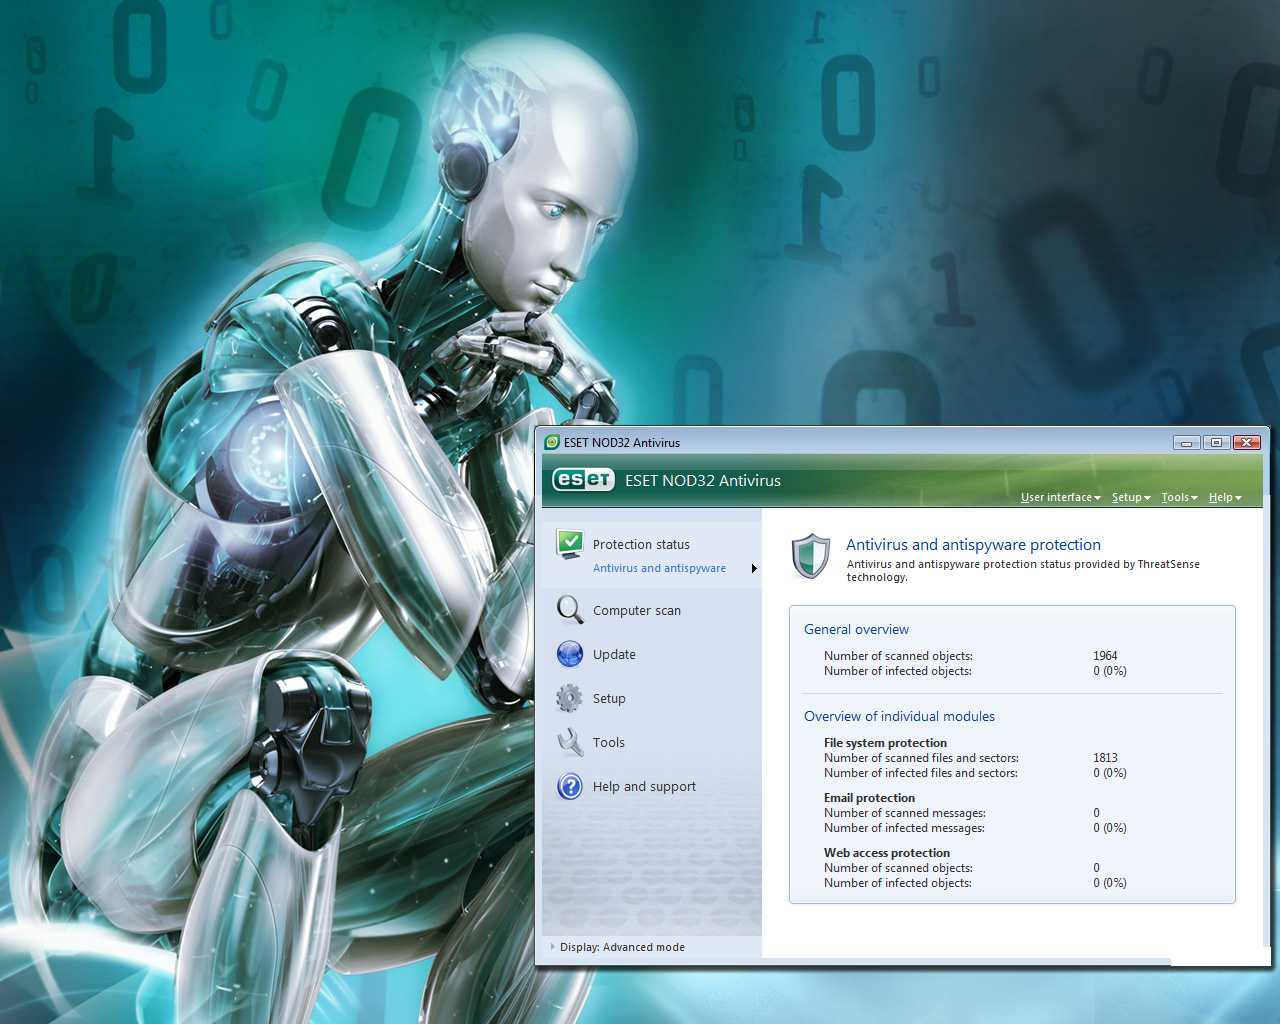 How To Get Eset Nod32 Free and Full Version